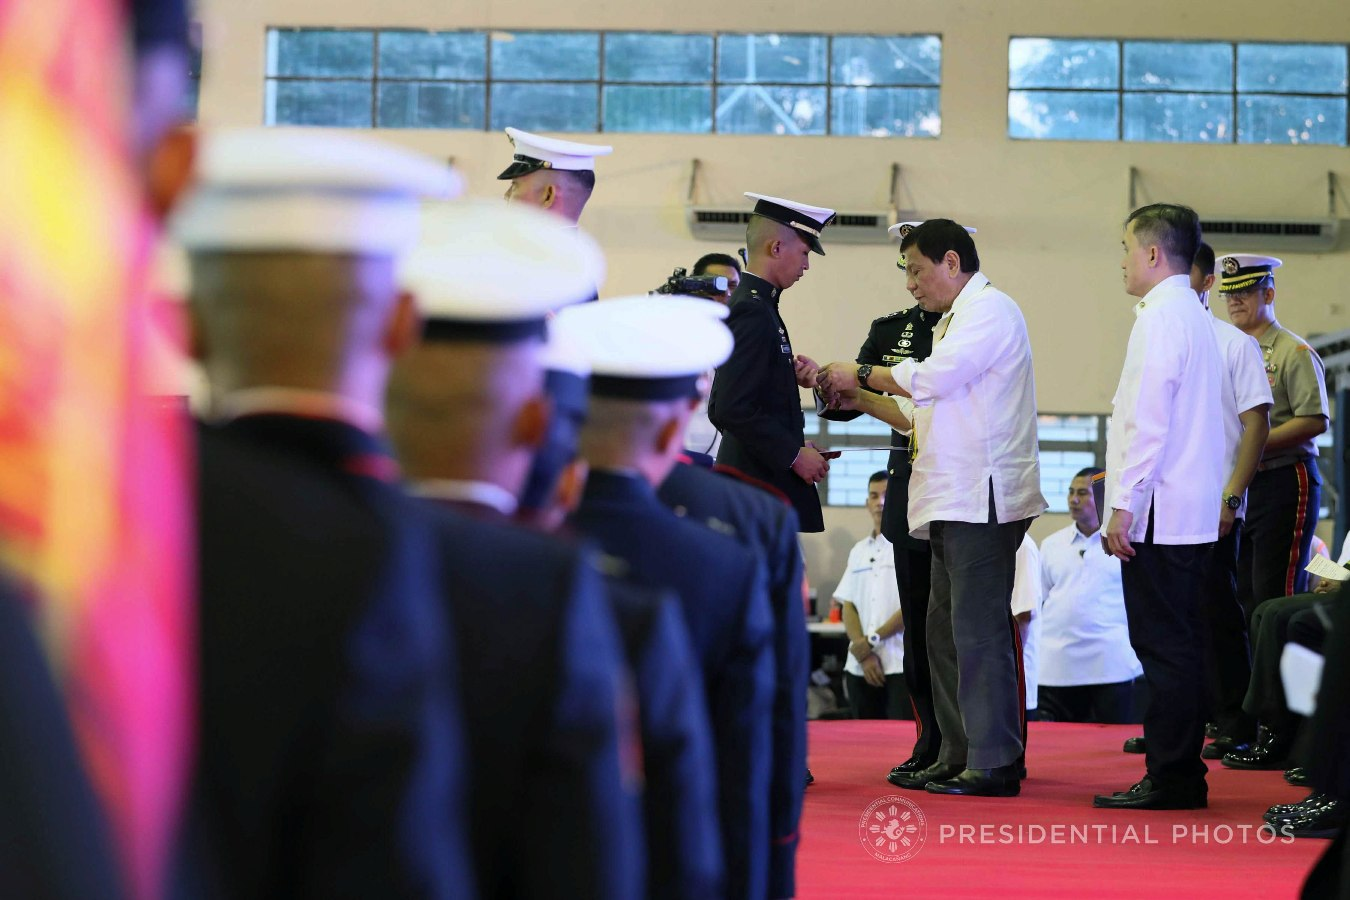 President Rodrigo Roa Duterte confers the Order of Lapu-Lapu Kamagi Medal and the Gold Cross Medal on 1Lt. Kim Martal during the 67th Birthday celebration of the Philippine Marine Corps at the Bonifacio Naval Station in Fort Bonifacio, Taguig City on November 7, 2017. Martal was hailed for his gallantry during a battle against the terrorists from the Maute Group. ACE MORANDANTE/PRESIDENTIAL PHOTO